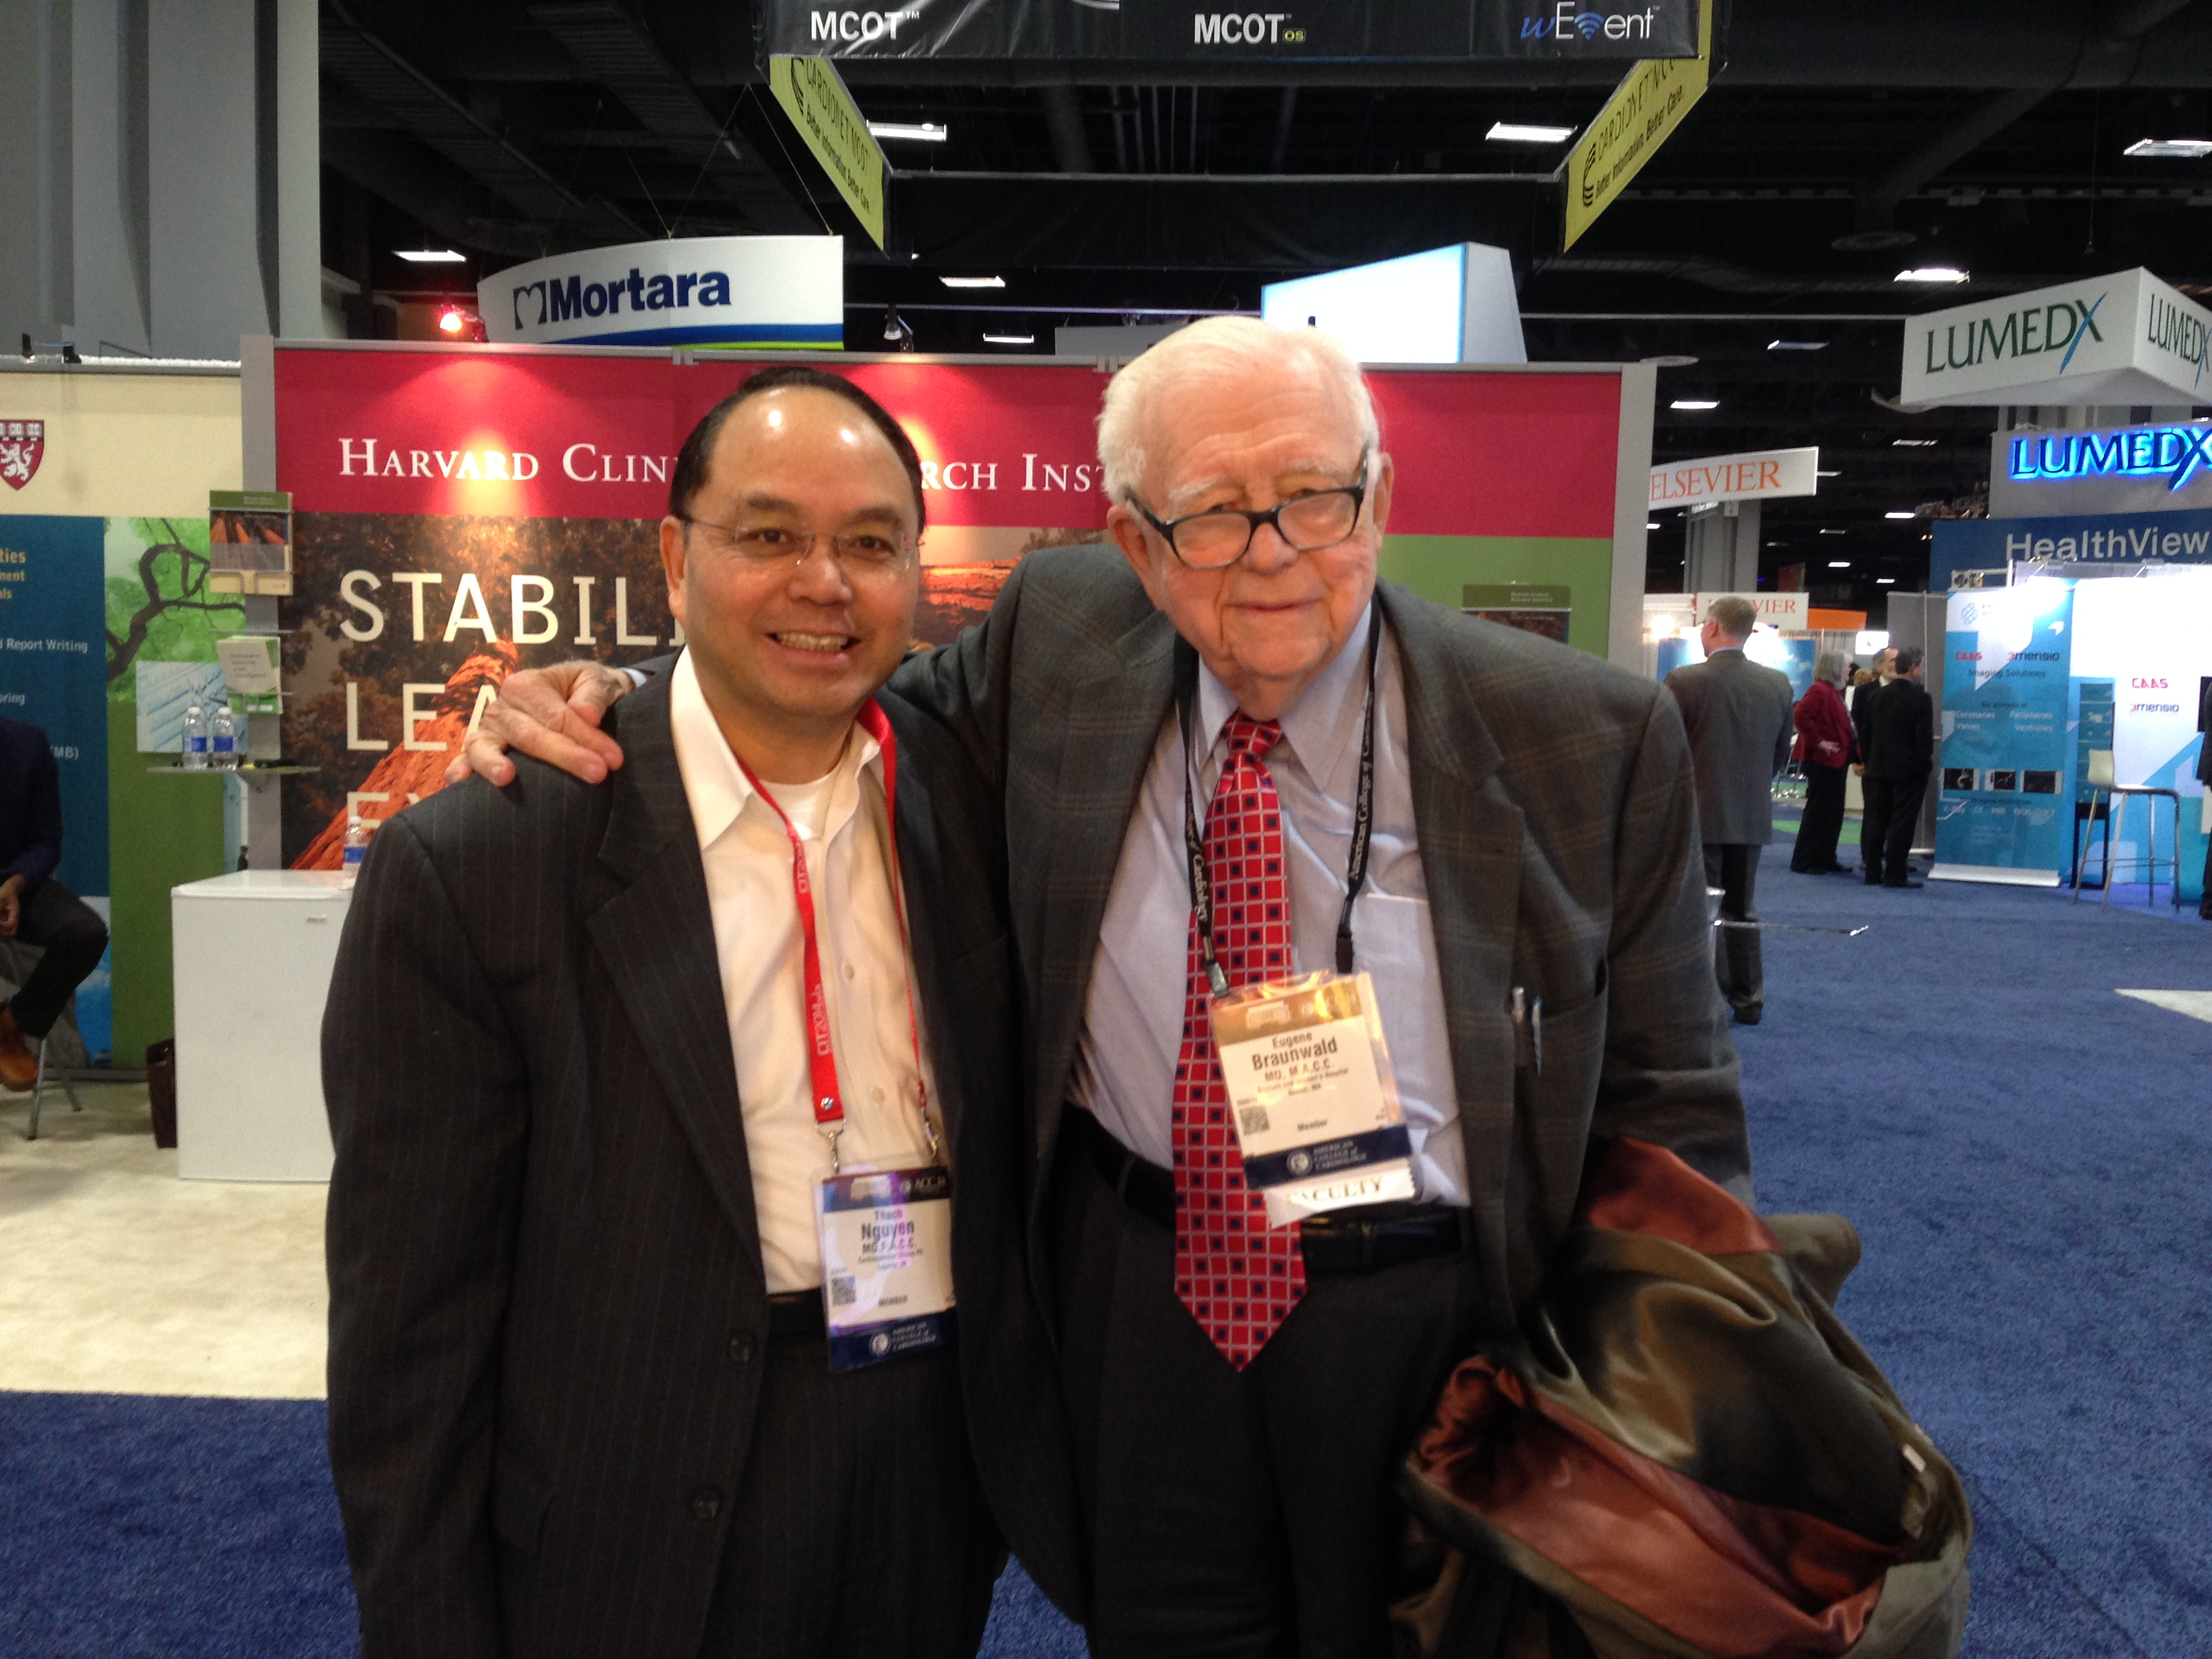 Prof. Thach Nguyen (L) and Prof. Eugene Braunwald